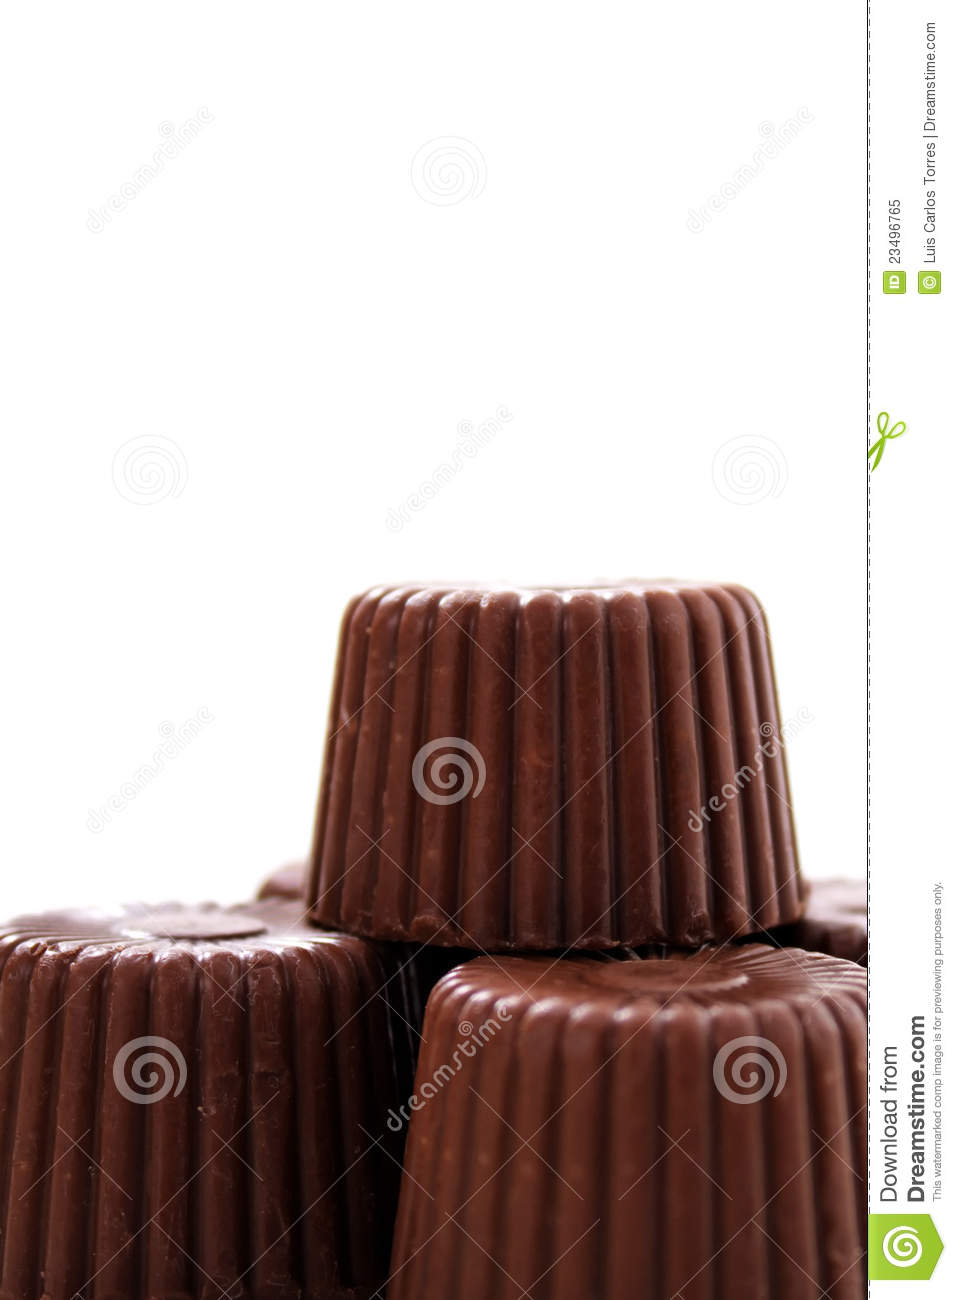 Rounded chocolate from bottom